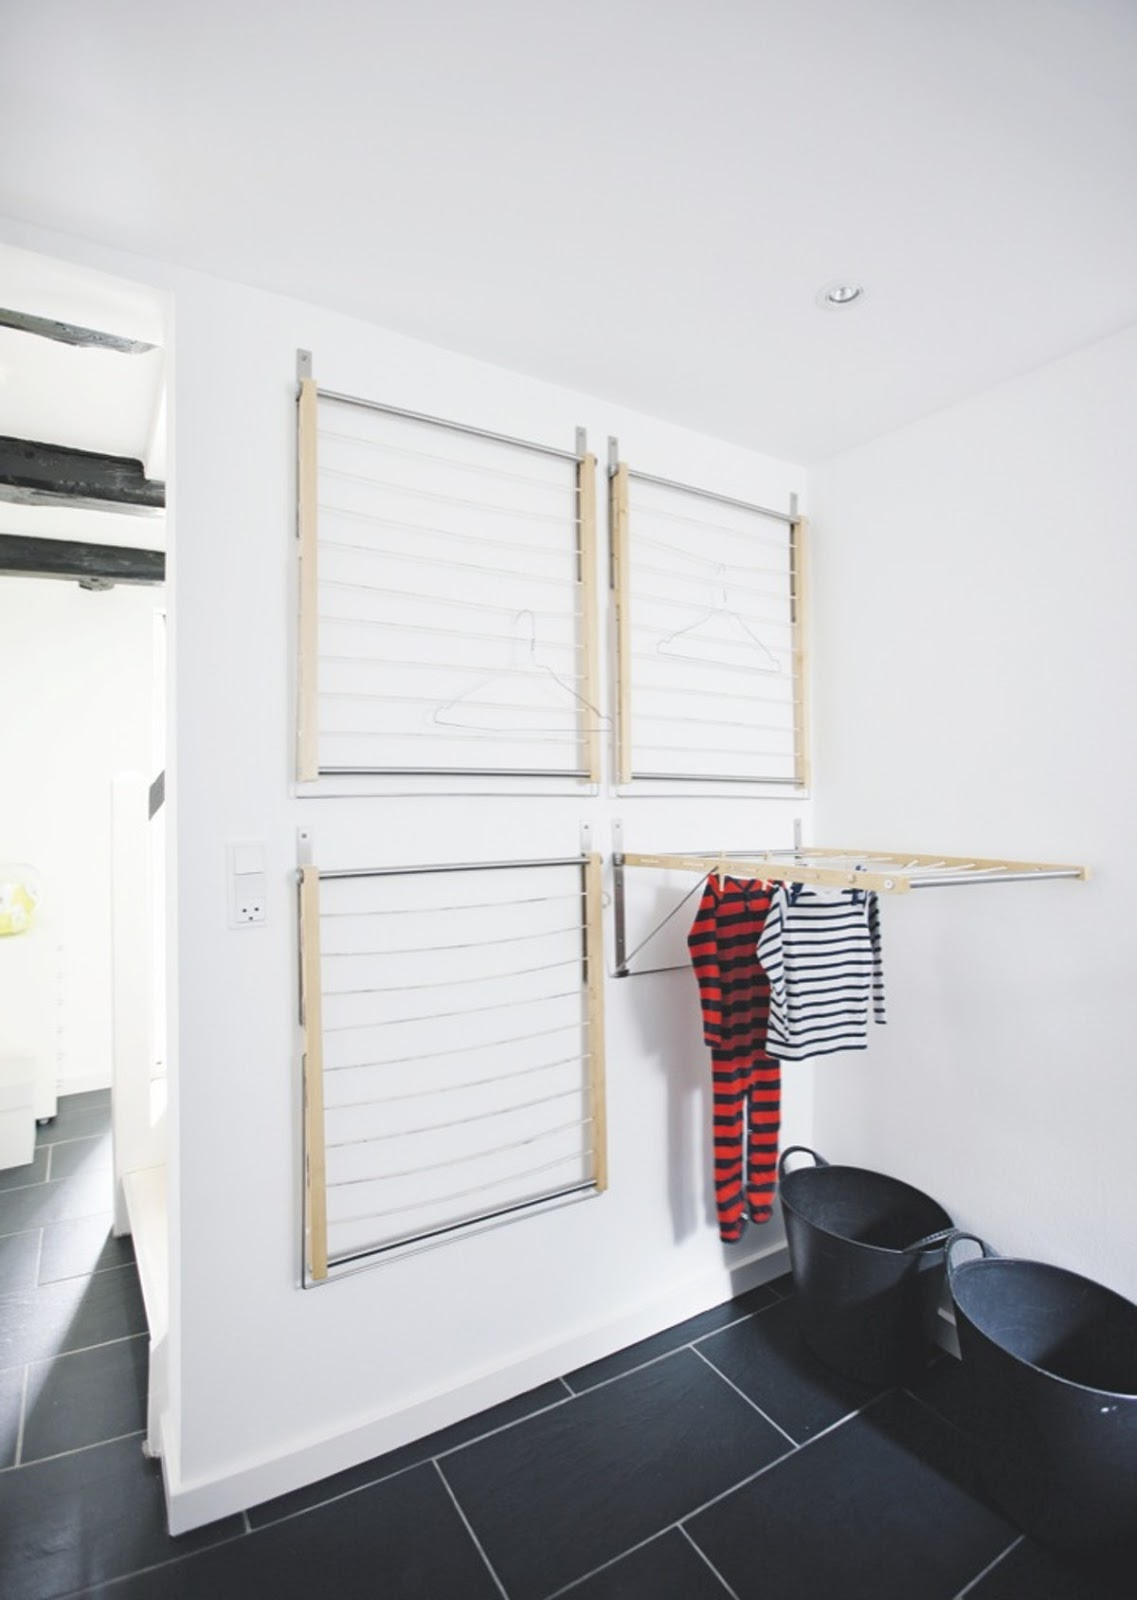 Install a drying rack from the ceiling or wall, ideal for rainy days when you can't hang your clothes outdoors